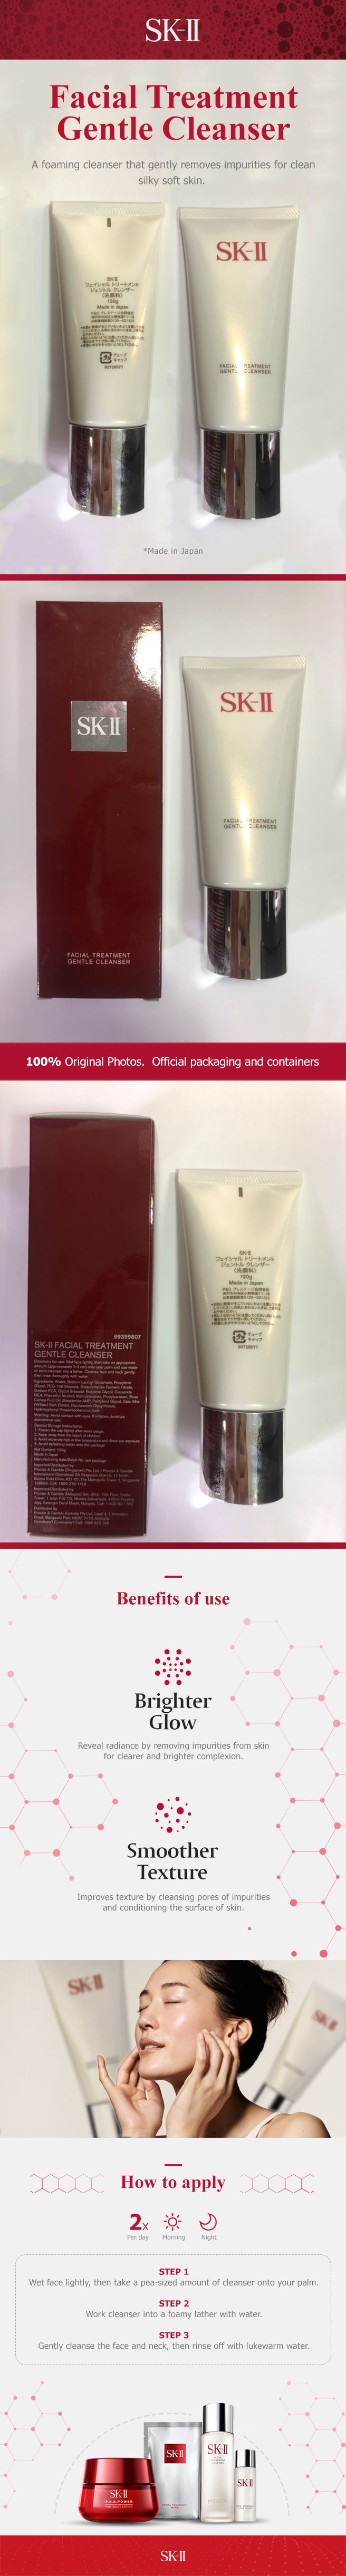 Sk-II Facial Treatment Gentle Cleanser 120g